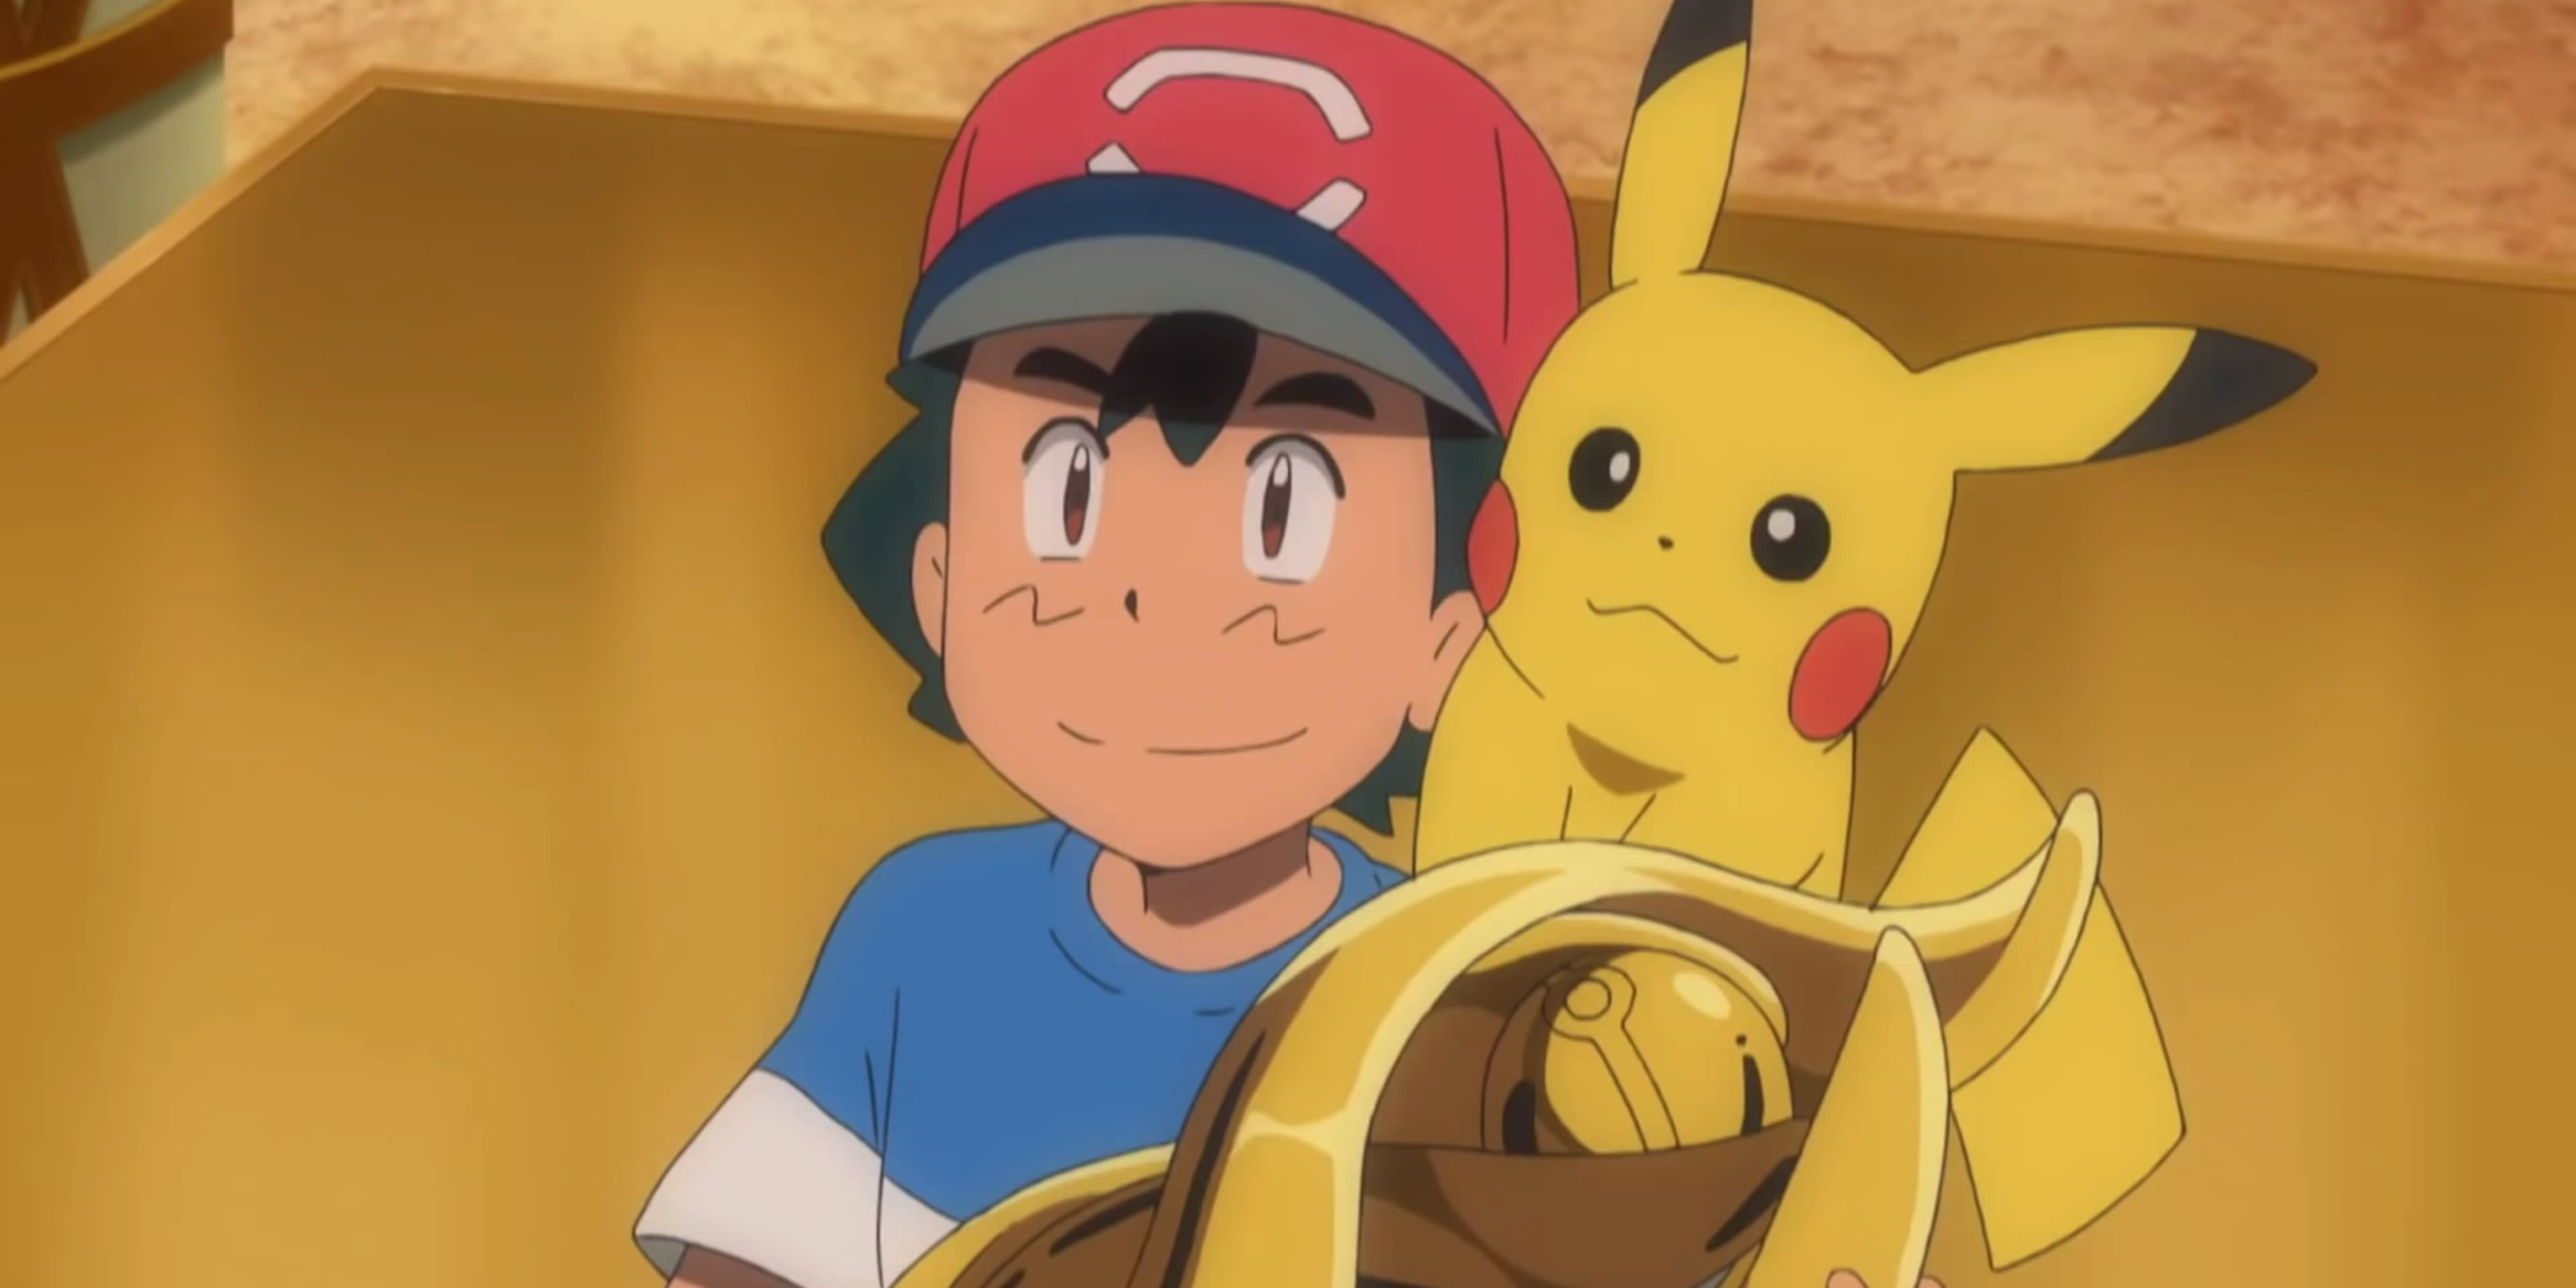 After more than 1,000 episodes and 22 films, Ash Ketchum is finally a Pokémon Master